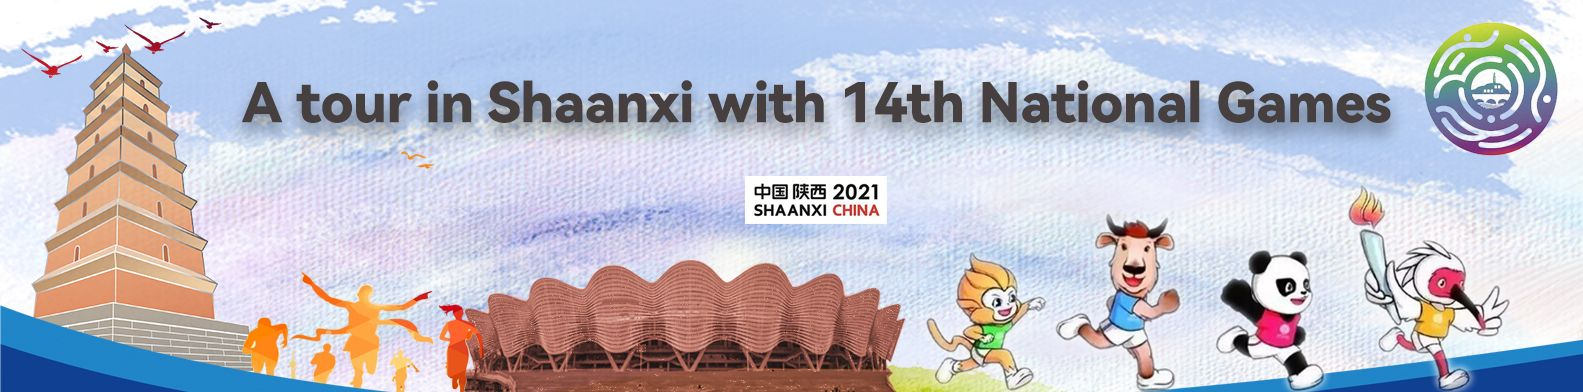 A tour in Shaanxi with 14th National Games